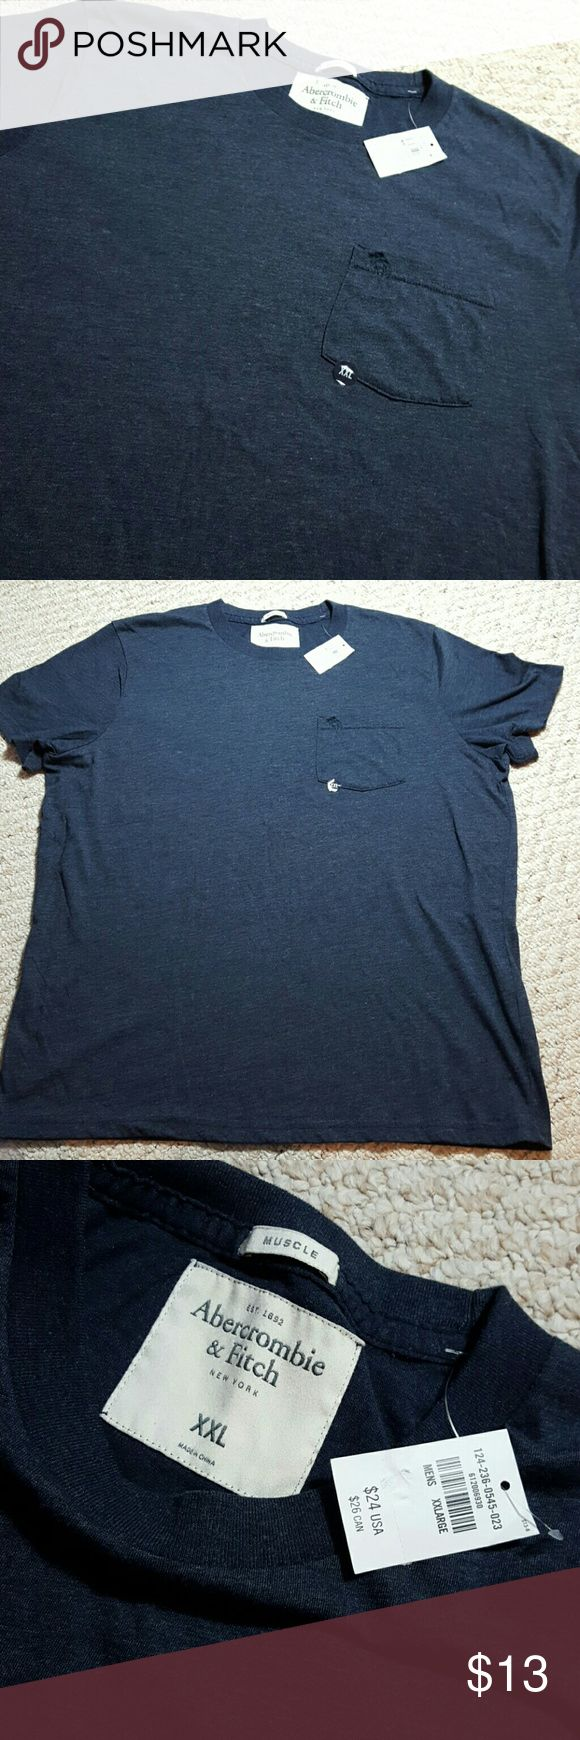 "New Abercrombie and Fitch TShirt New with tags  AF muscle TShirt  29"" in length  23"" underarm to underarm  3"" arm inseam  Dark Navy Blue  No trades Please  No modeling Abercrombie & Fitch Shirts Tees - Short Sleeve"